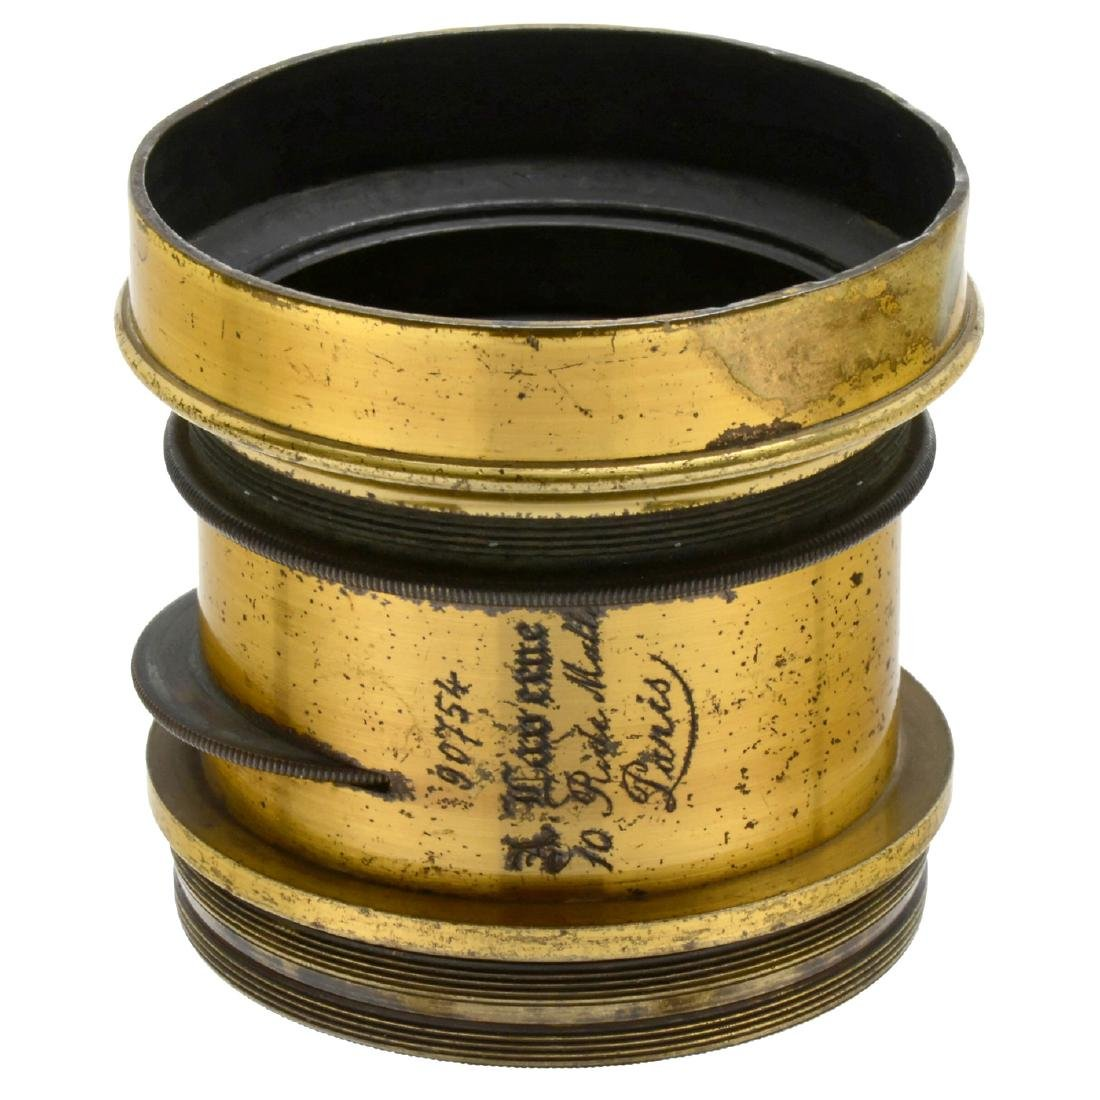 3 French Brass Lenses and 1 Caterpillar Projection Lens - 4